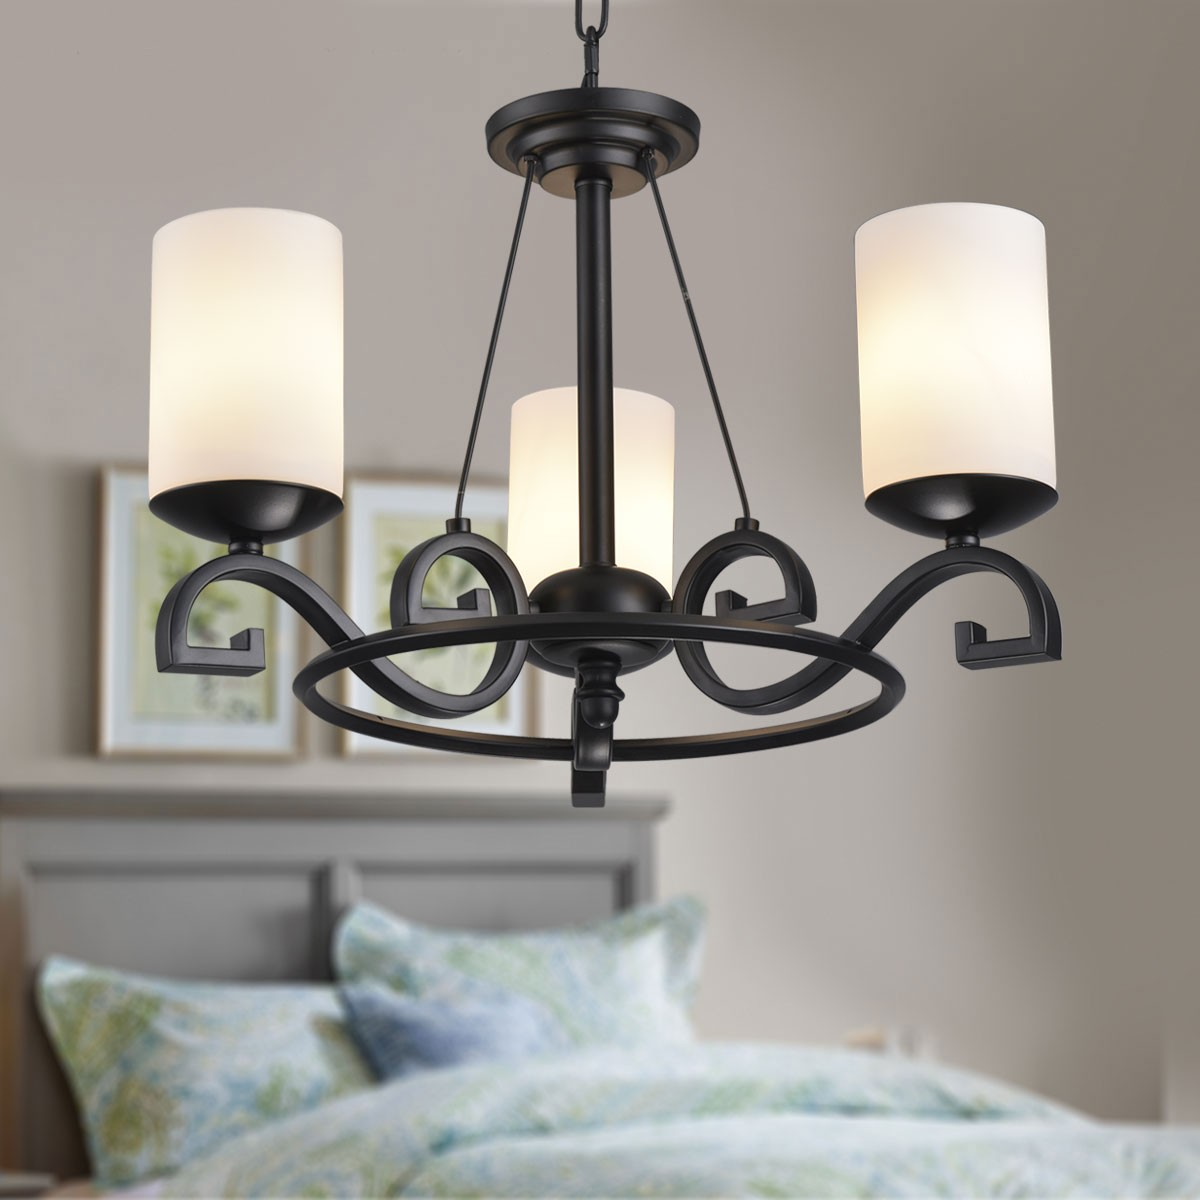 3 Light Black Wrought Iron Chandelier With Glass Shades Dk 8020 3 Decoraport Canada